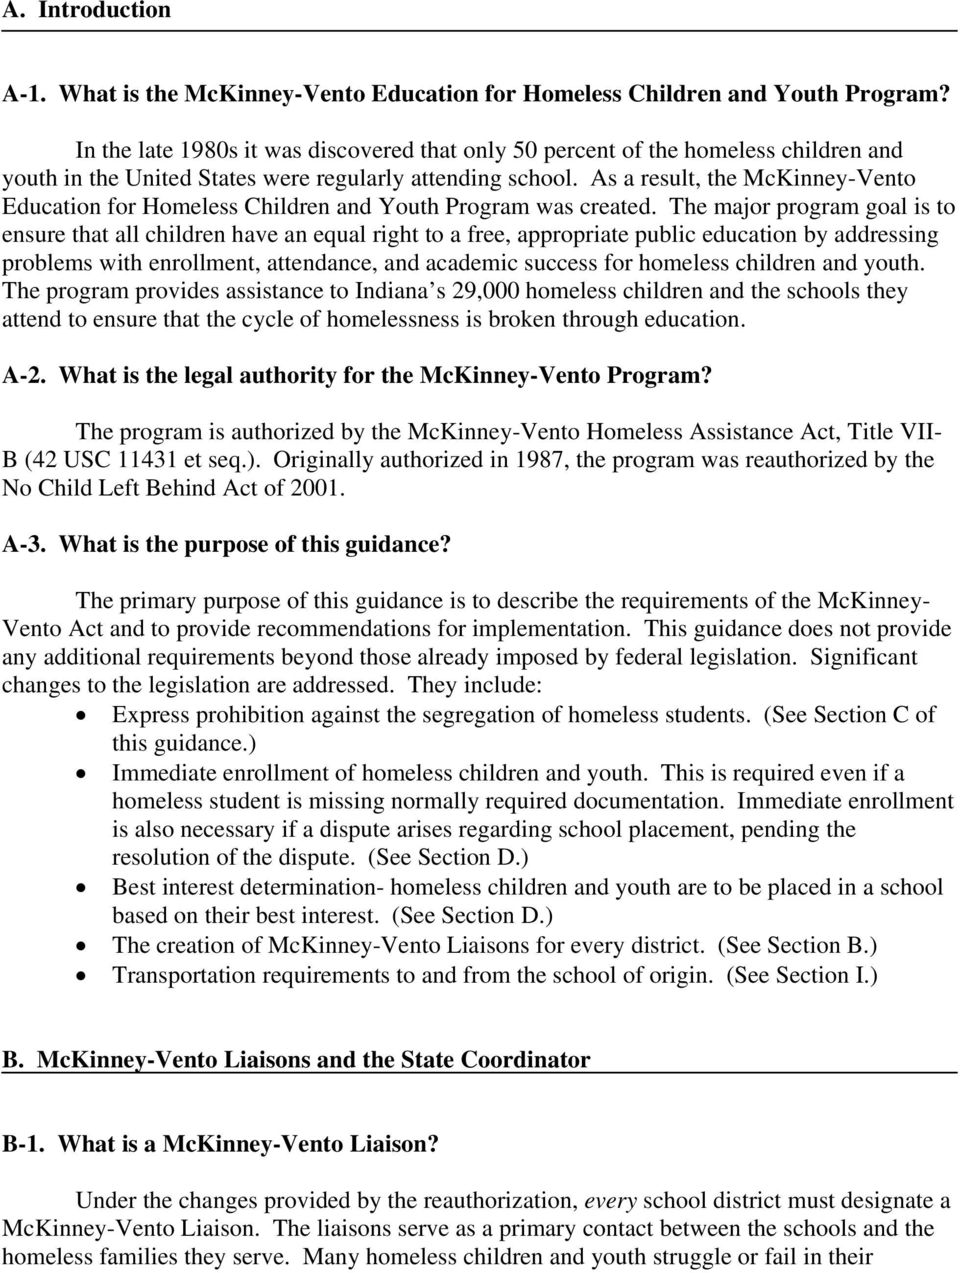 As a result, the McKinney-Vento Education for Homeless Children and Youth Program was created.